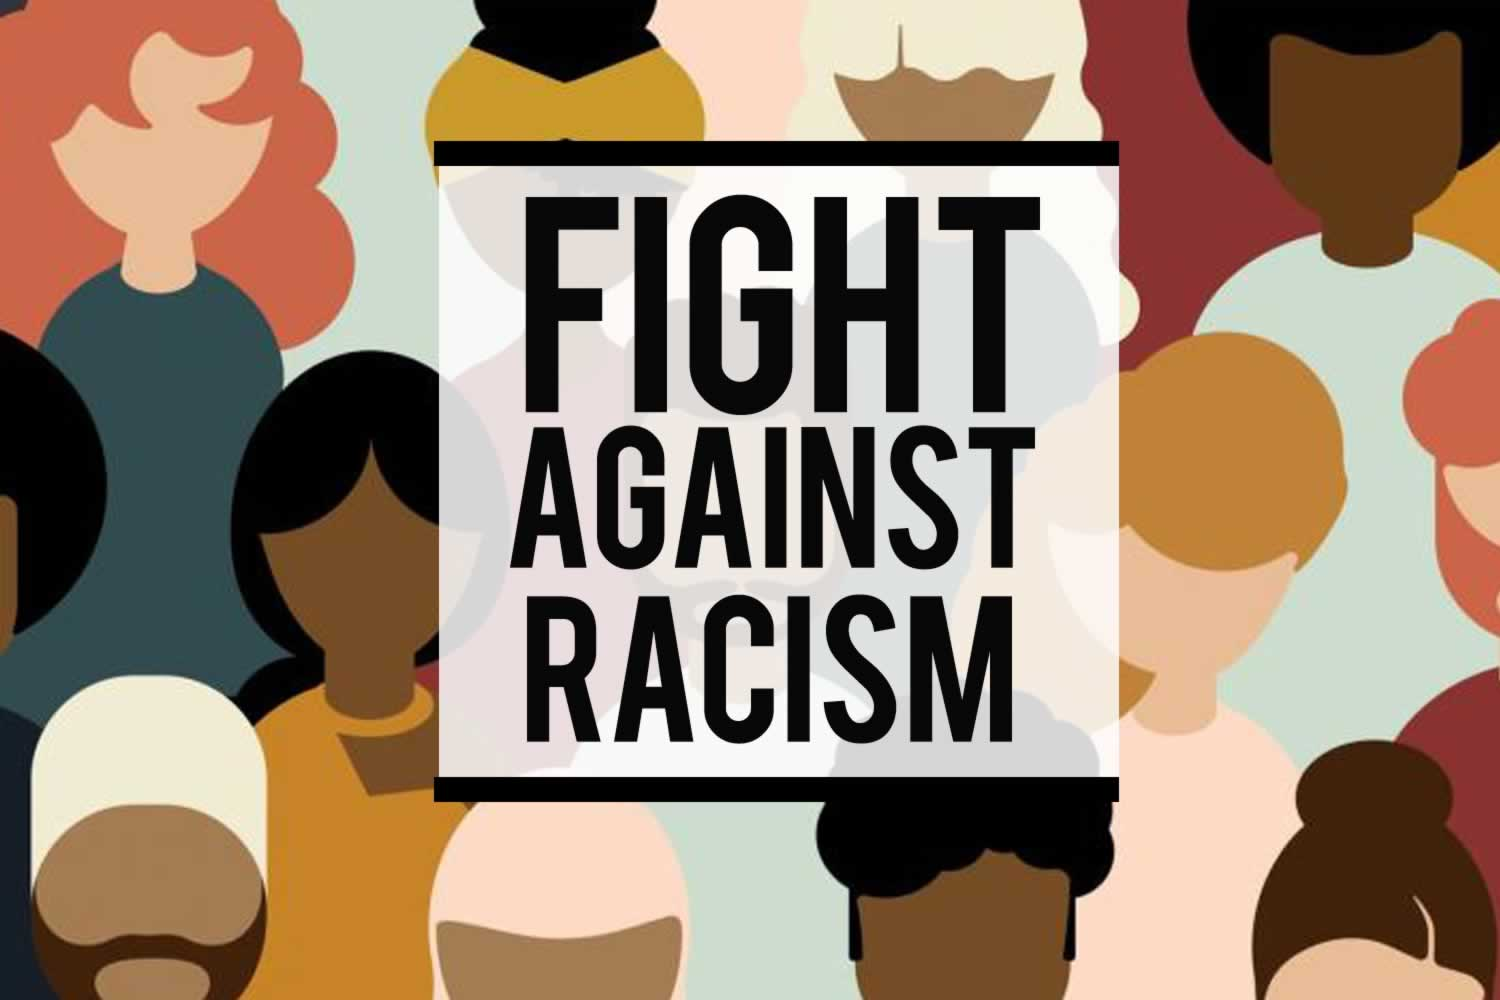 Fight Against Racism. Illustration of a diverse group of people